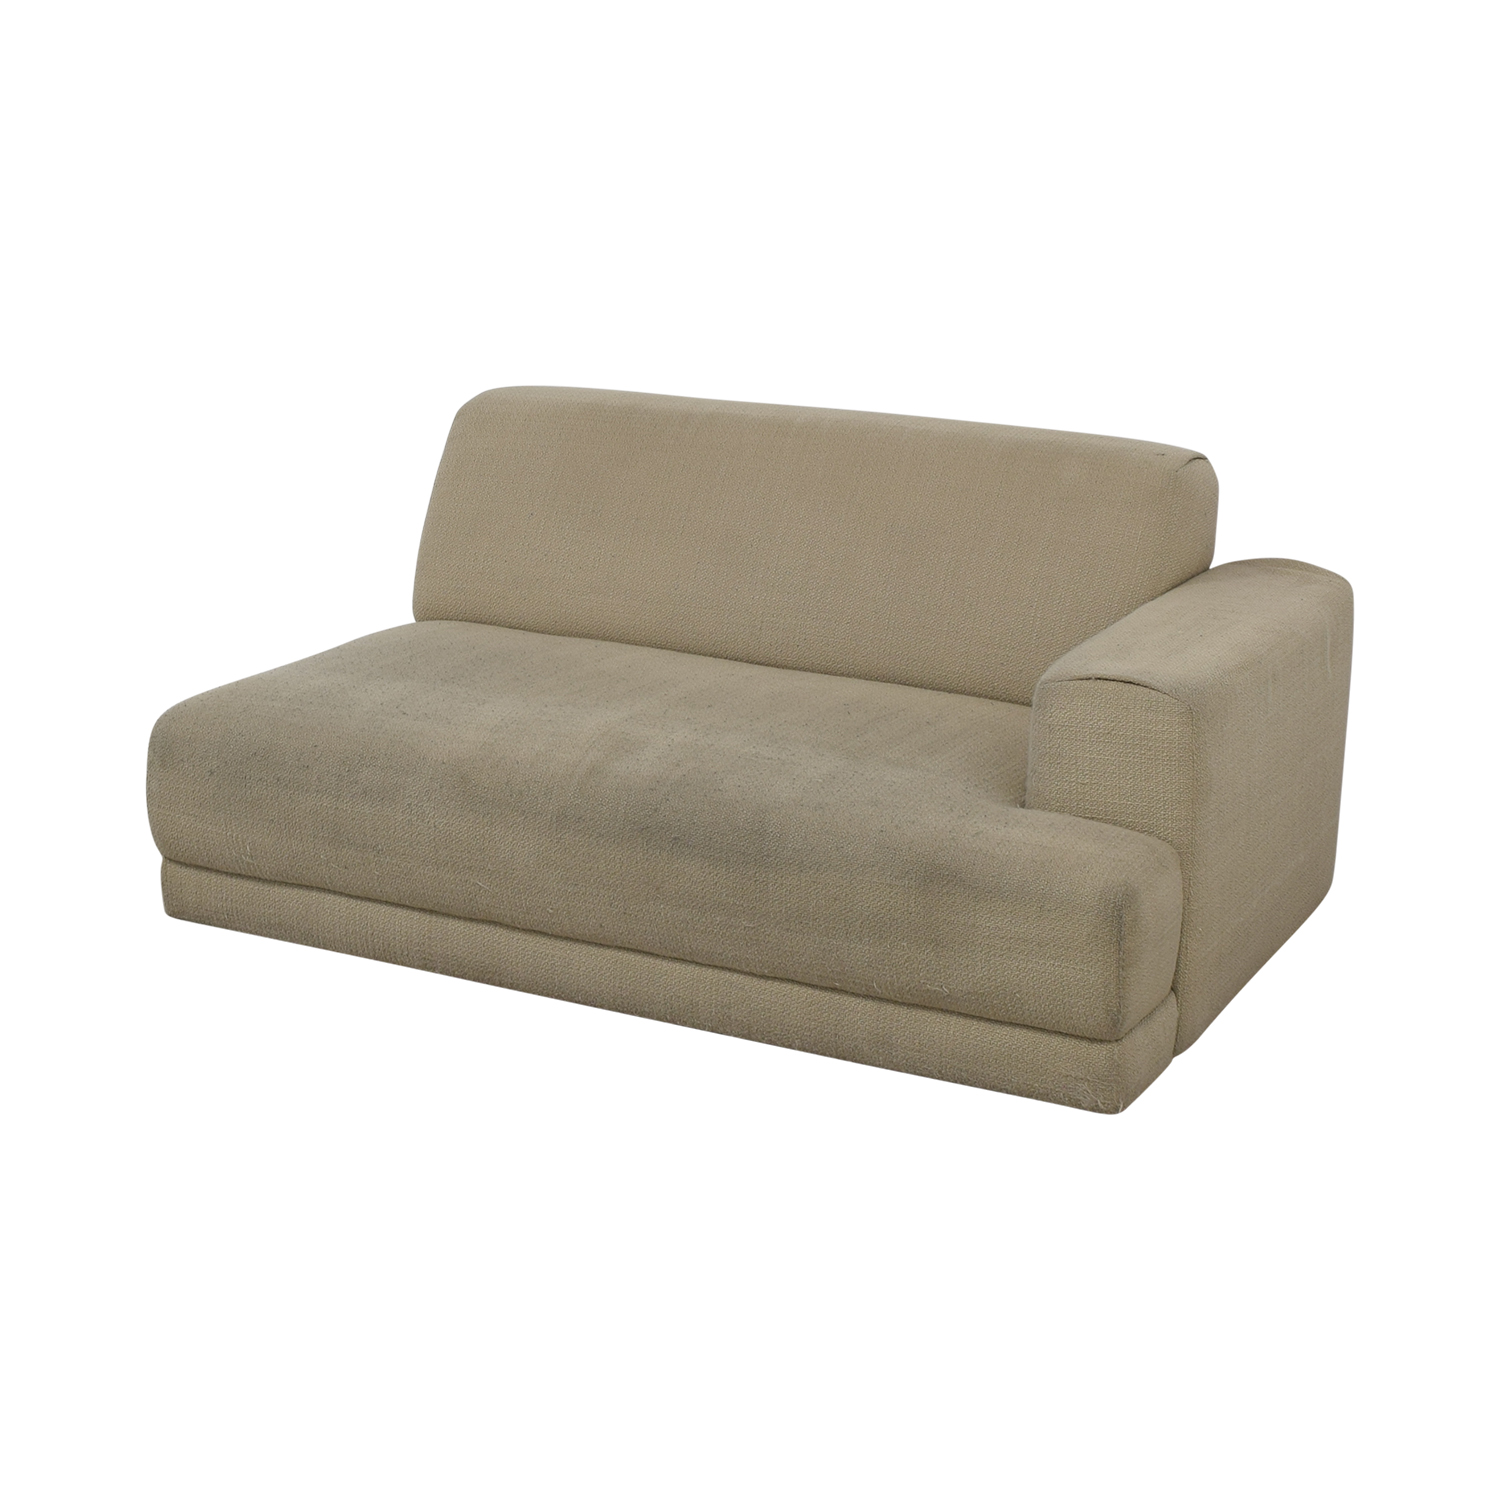 shop Crate & Barrel Beige One Armed Chaise Sofa Crate & Barrel Sofas